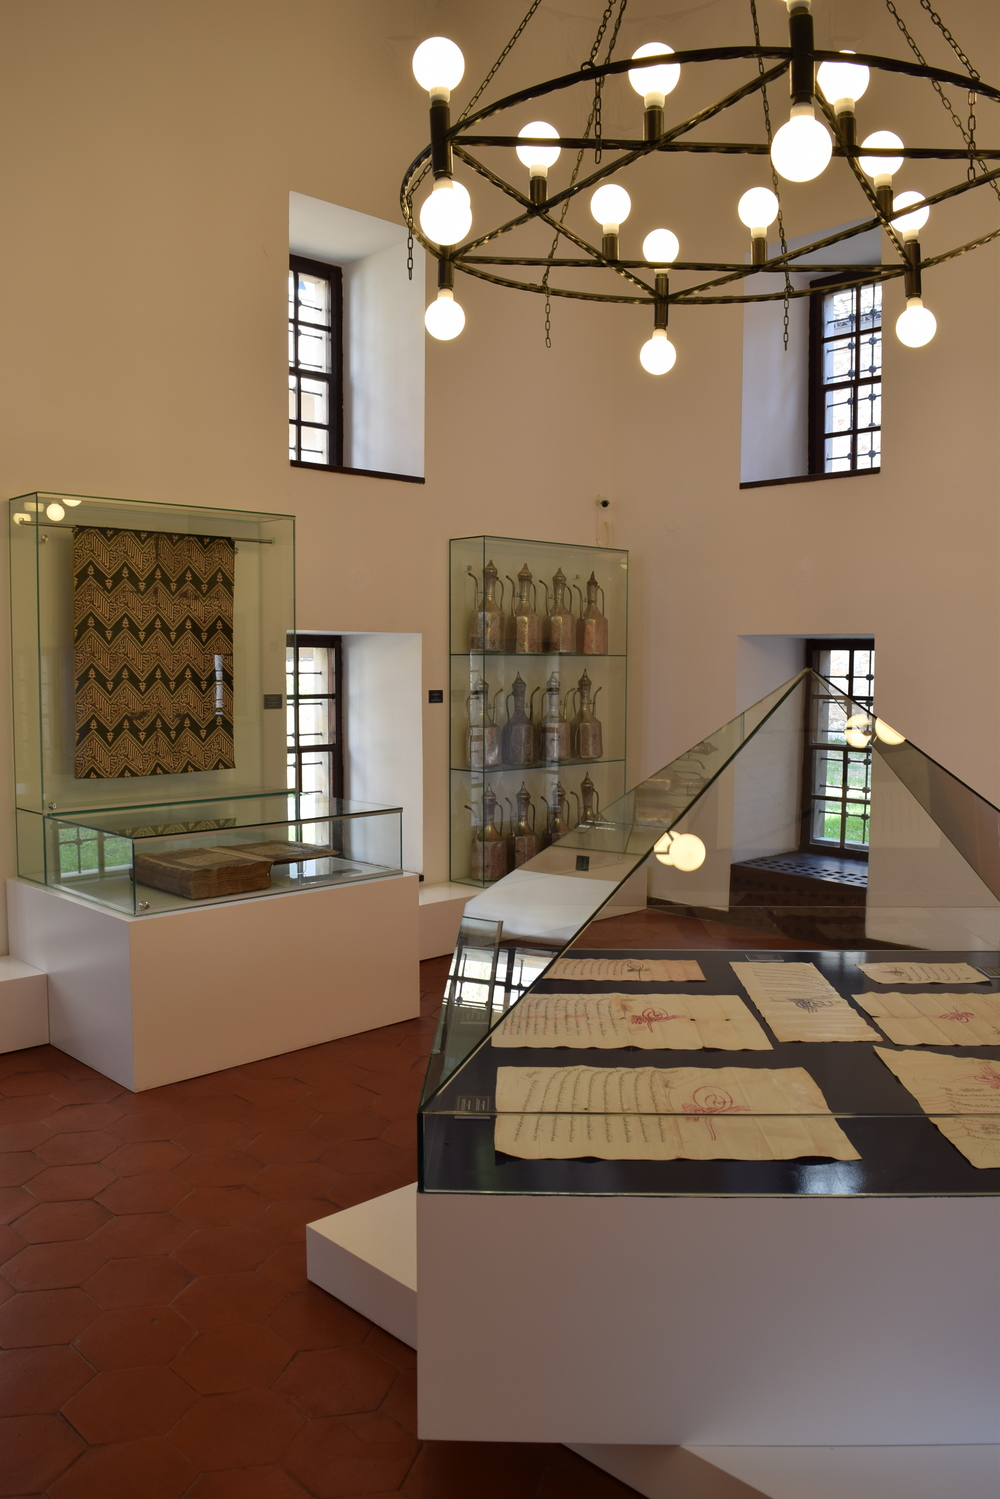 The madrasa provided for by the endowment of Gazi Huzrev-beg, an early Orroman governor of the area, serves as a museum documenting the legacy of the endowment.